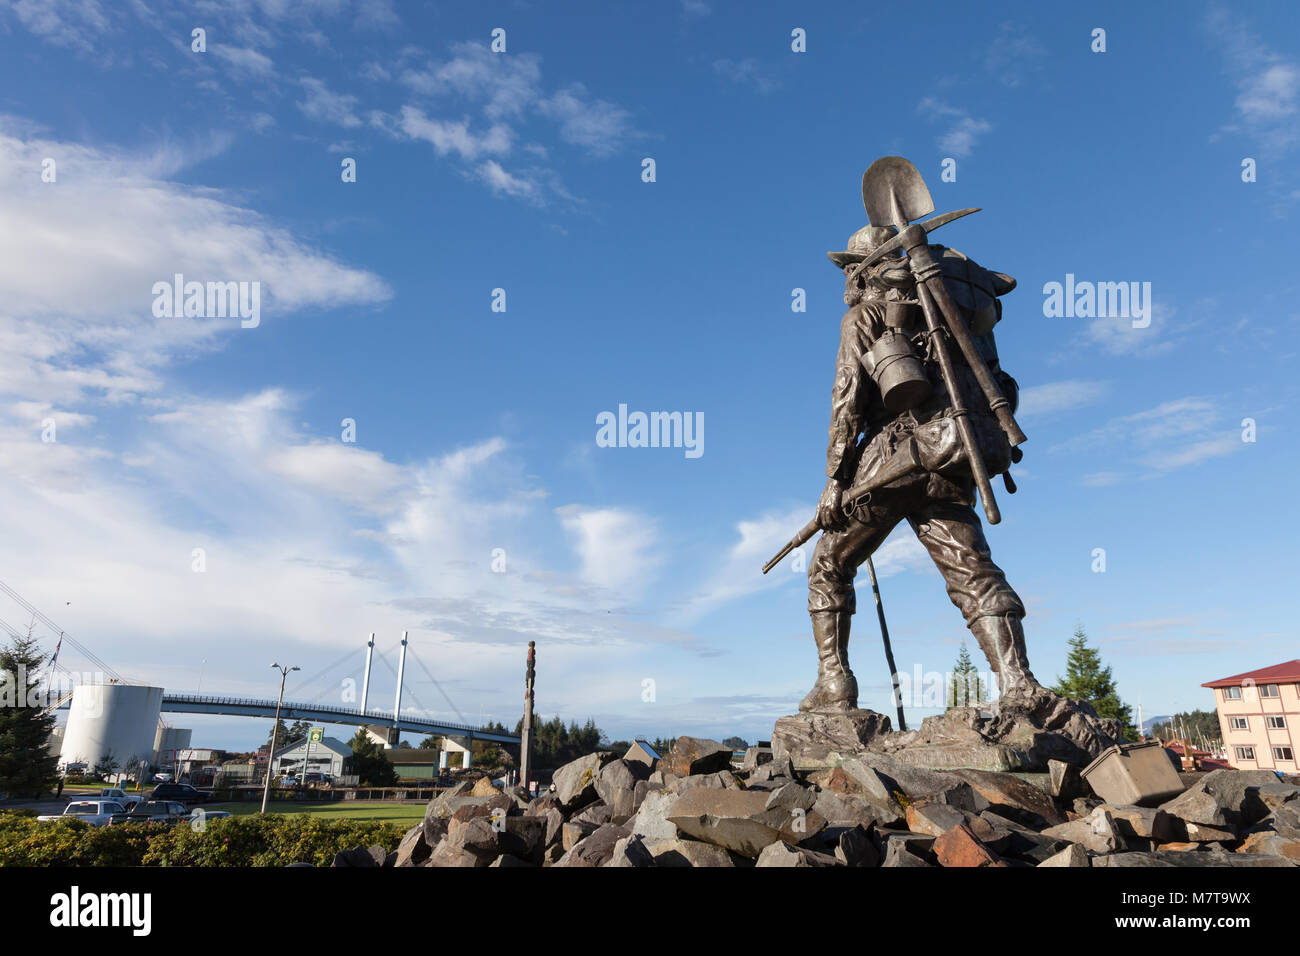 Sitka, Alaska: Artist Alonzo Victor Lewis' sculpture 'The Prospector' at the Sitka Pioneer Home overlooking - Stock Image